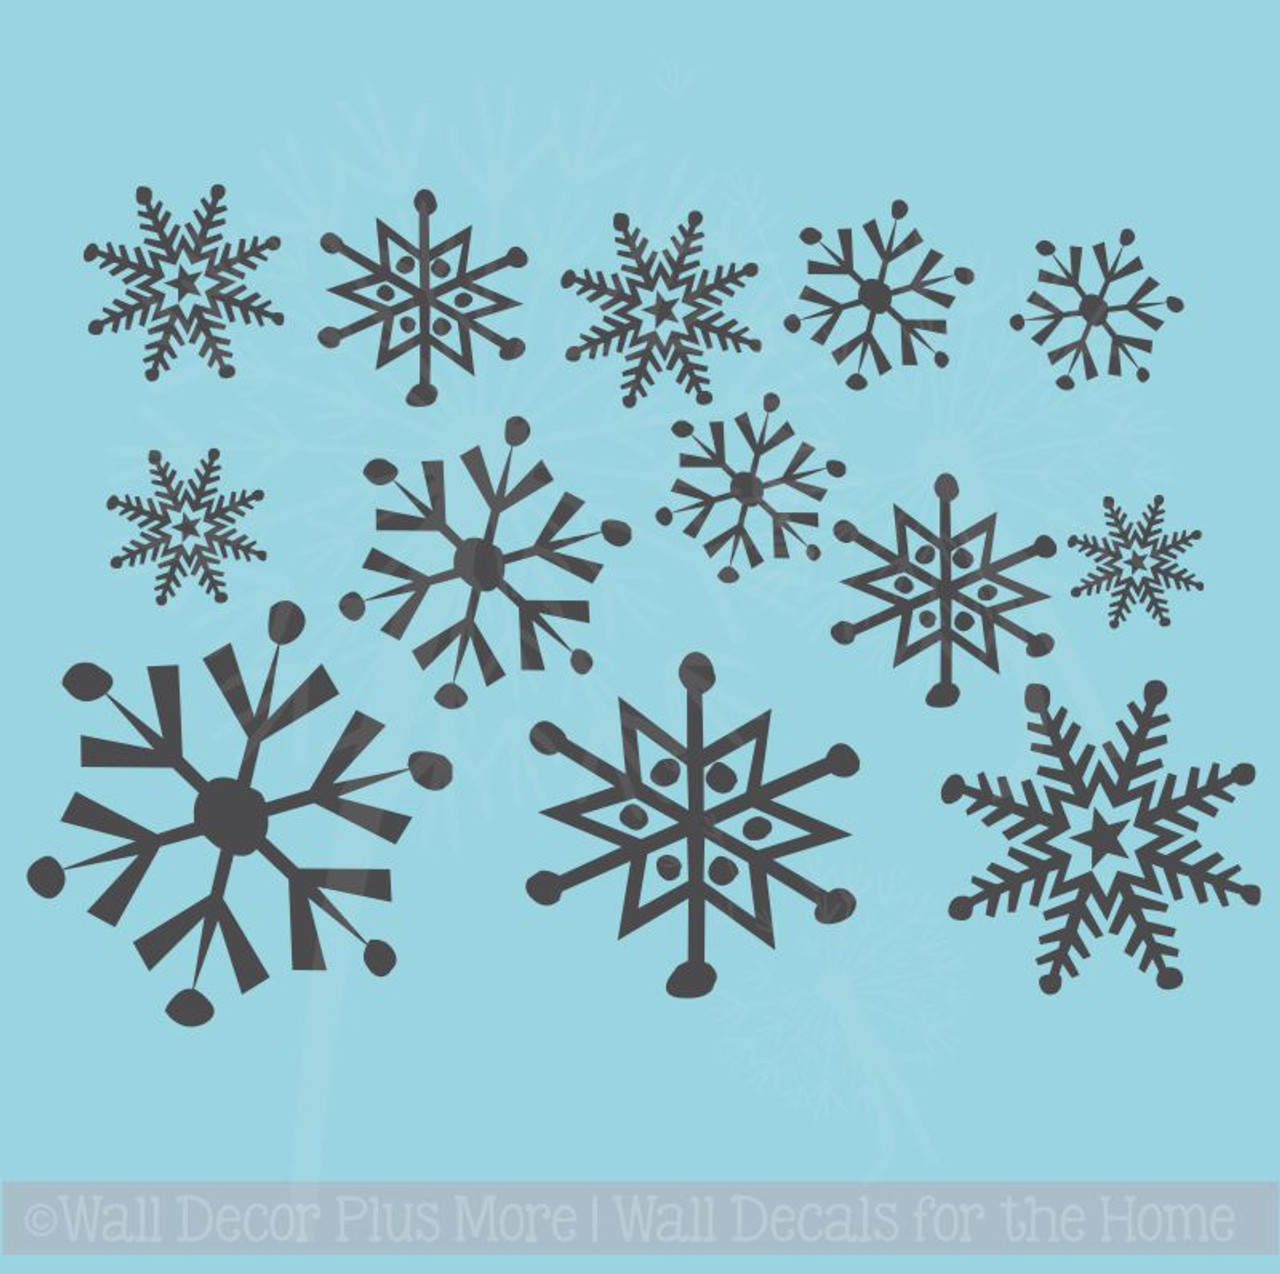 large snowflake designs vinyl decals assorted set of 13 stickers